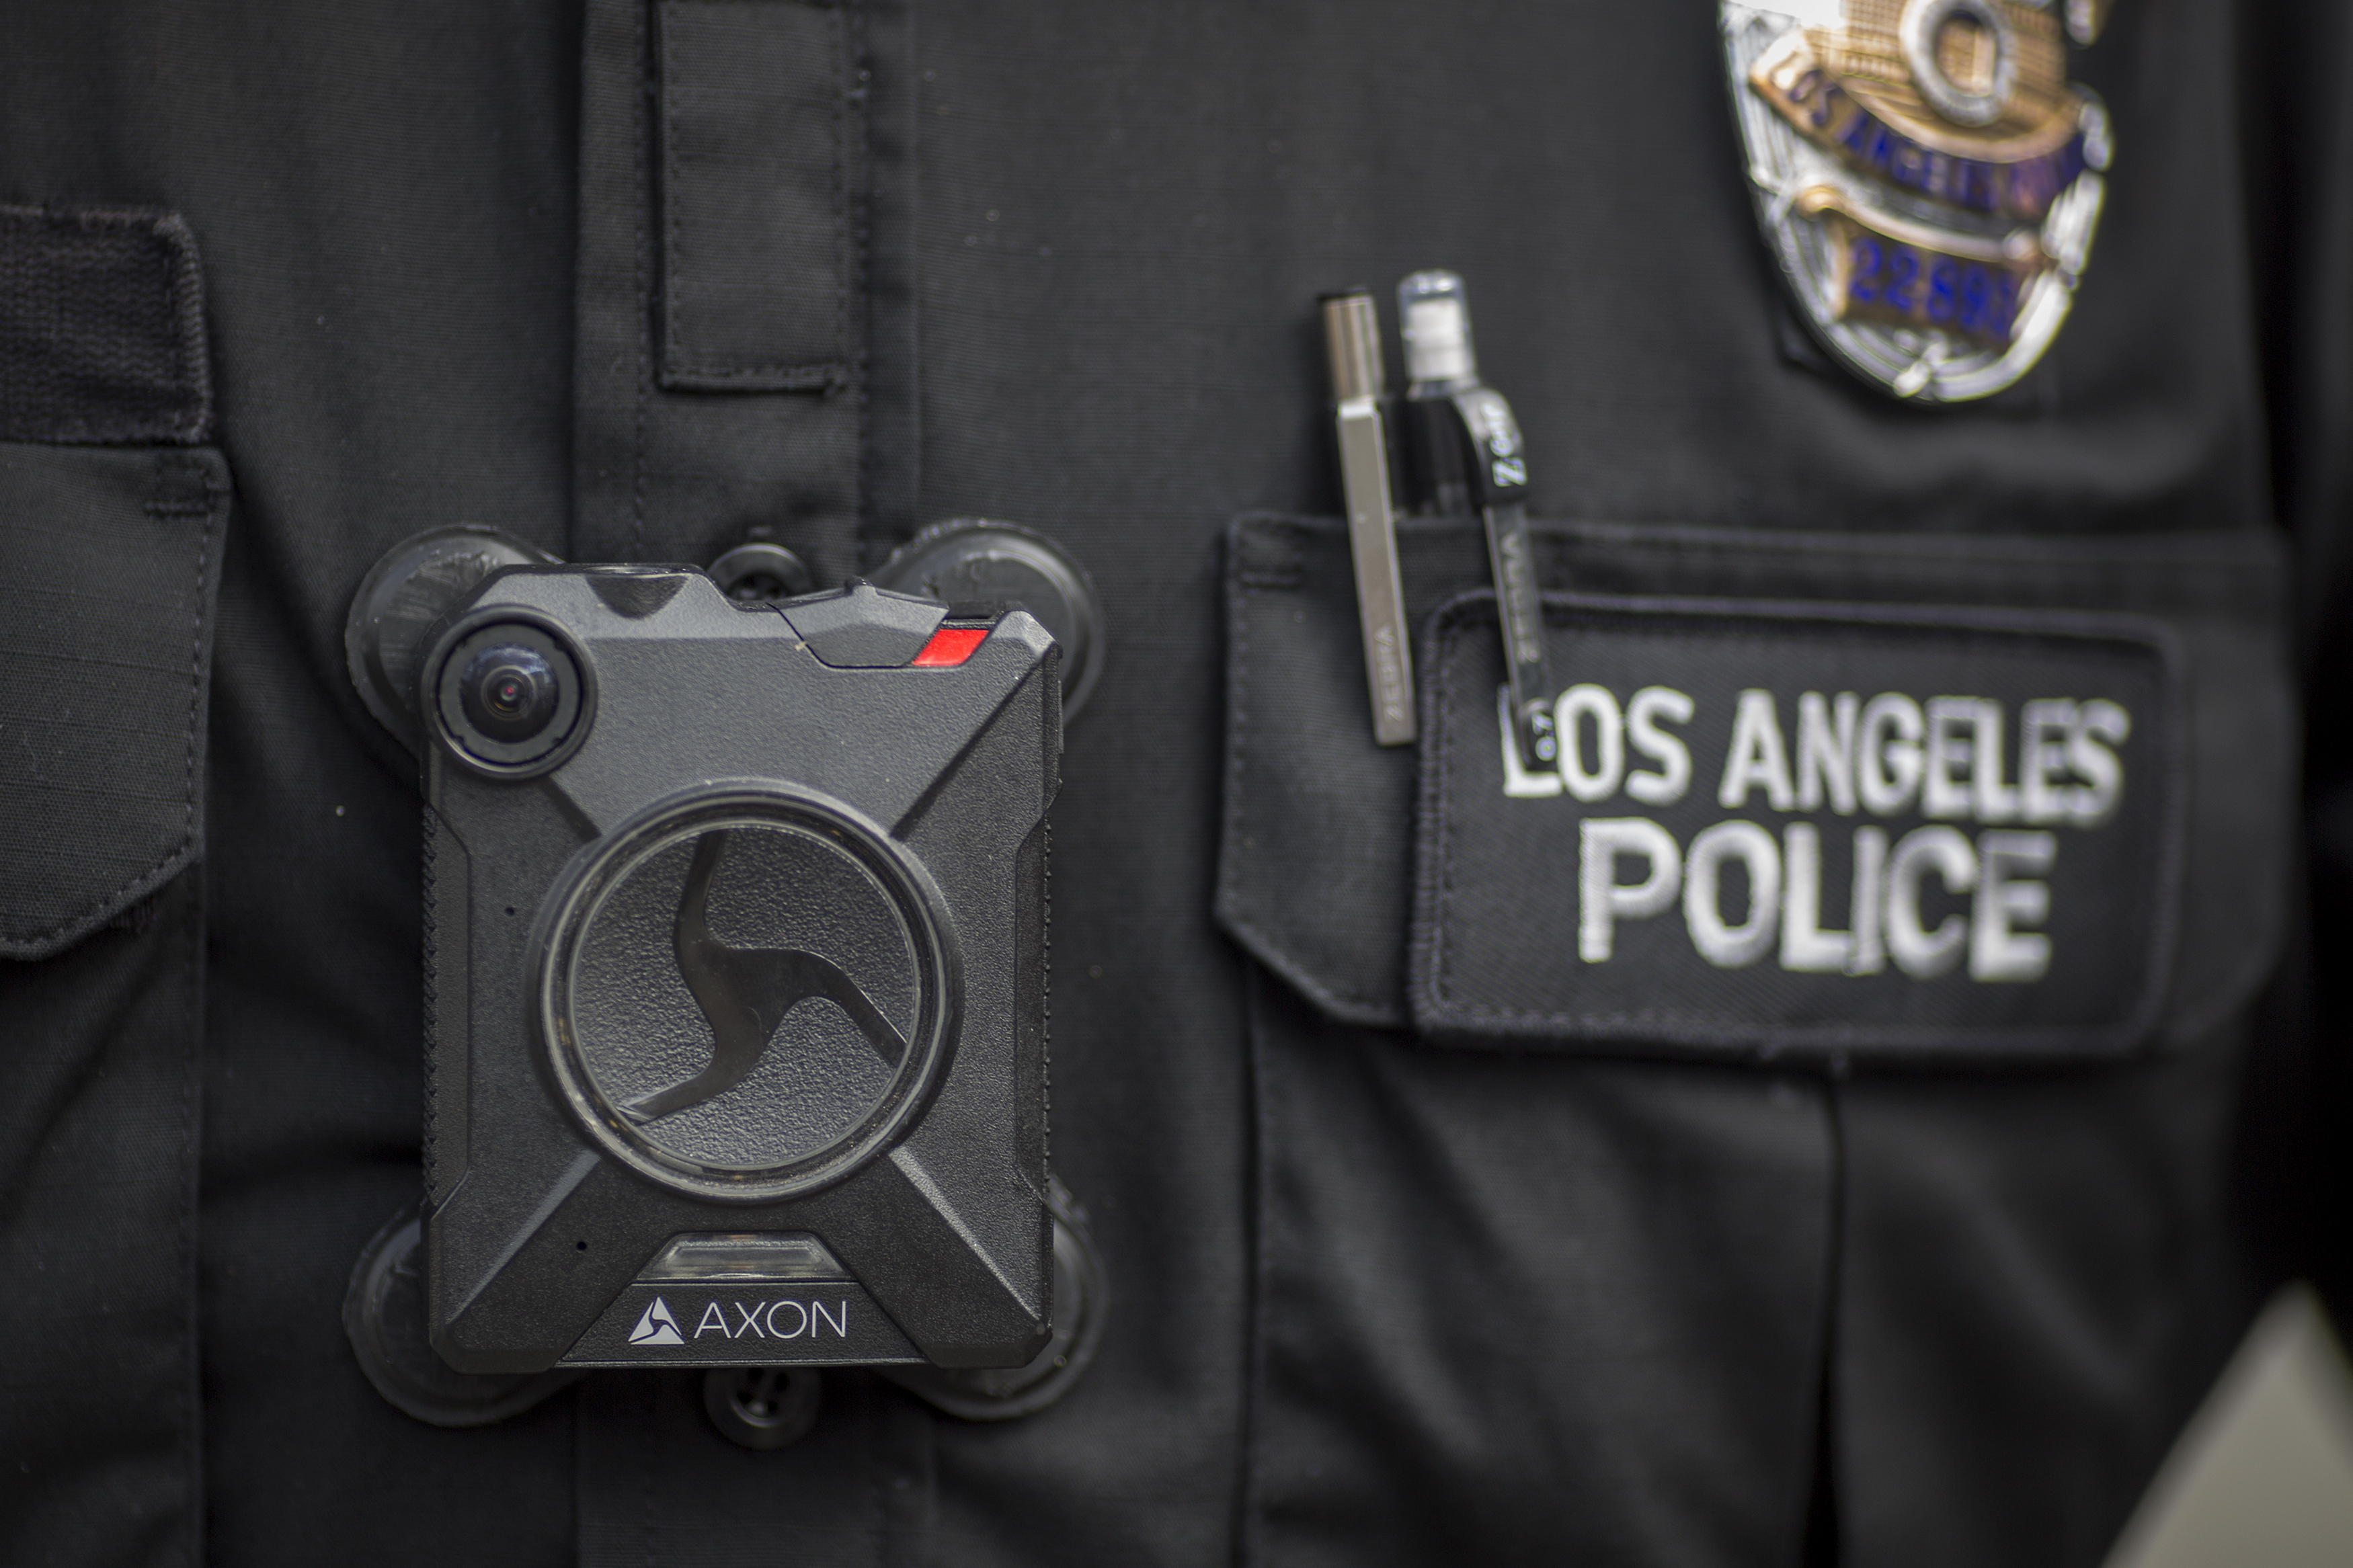 A Los Angeles police officer wear an AXON body camera on February 18, 2017.